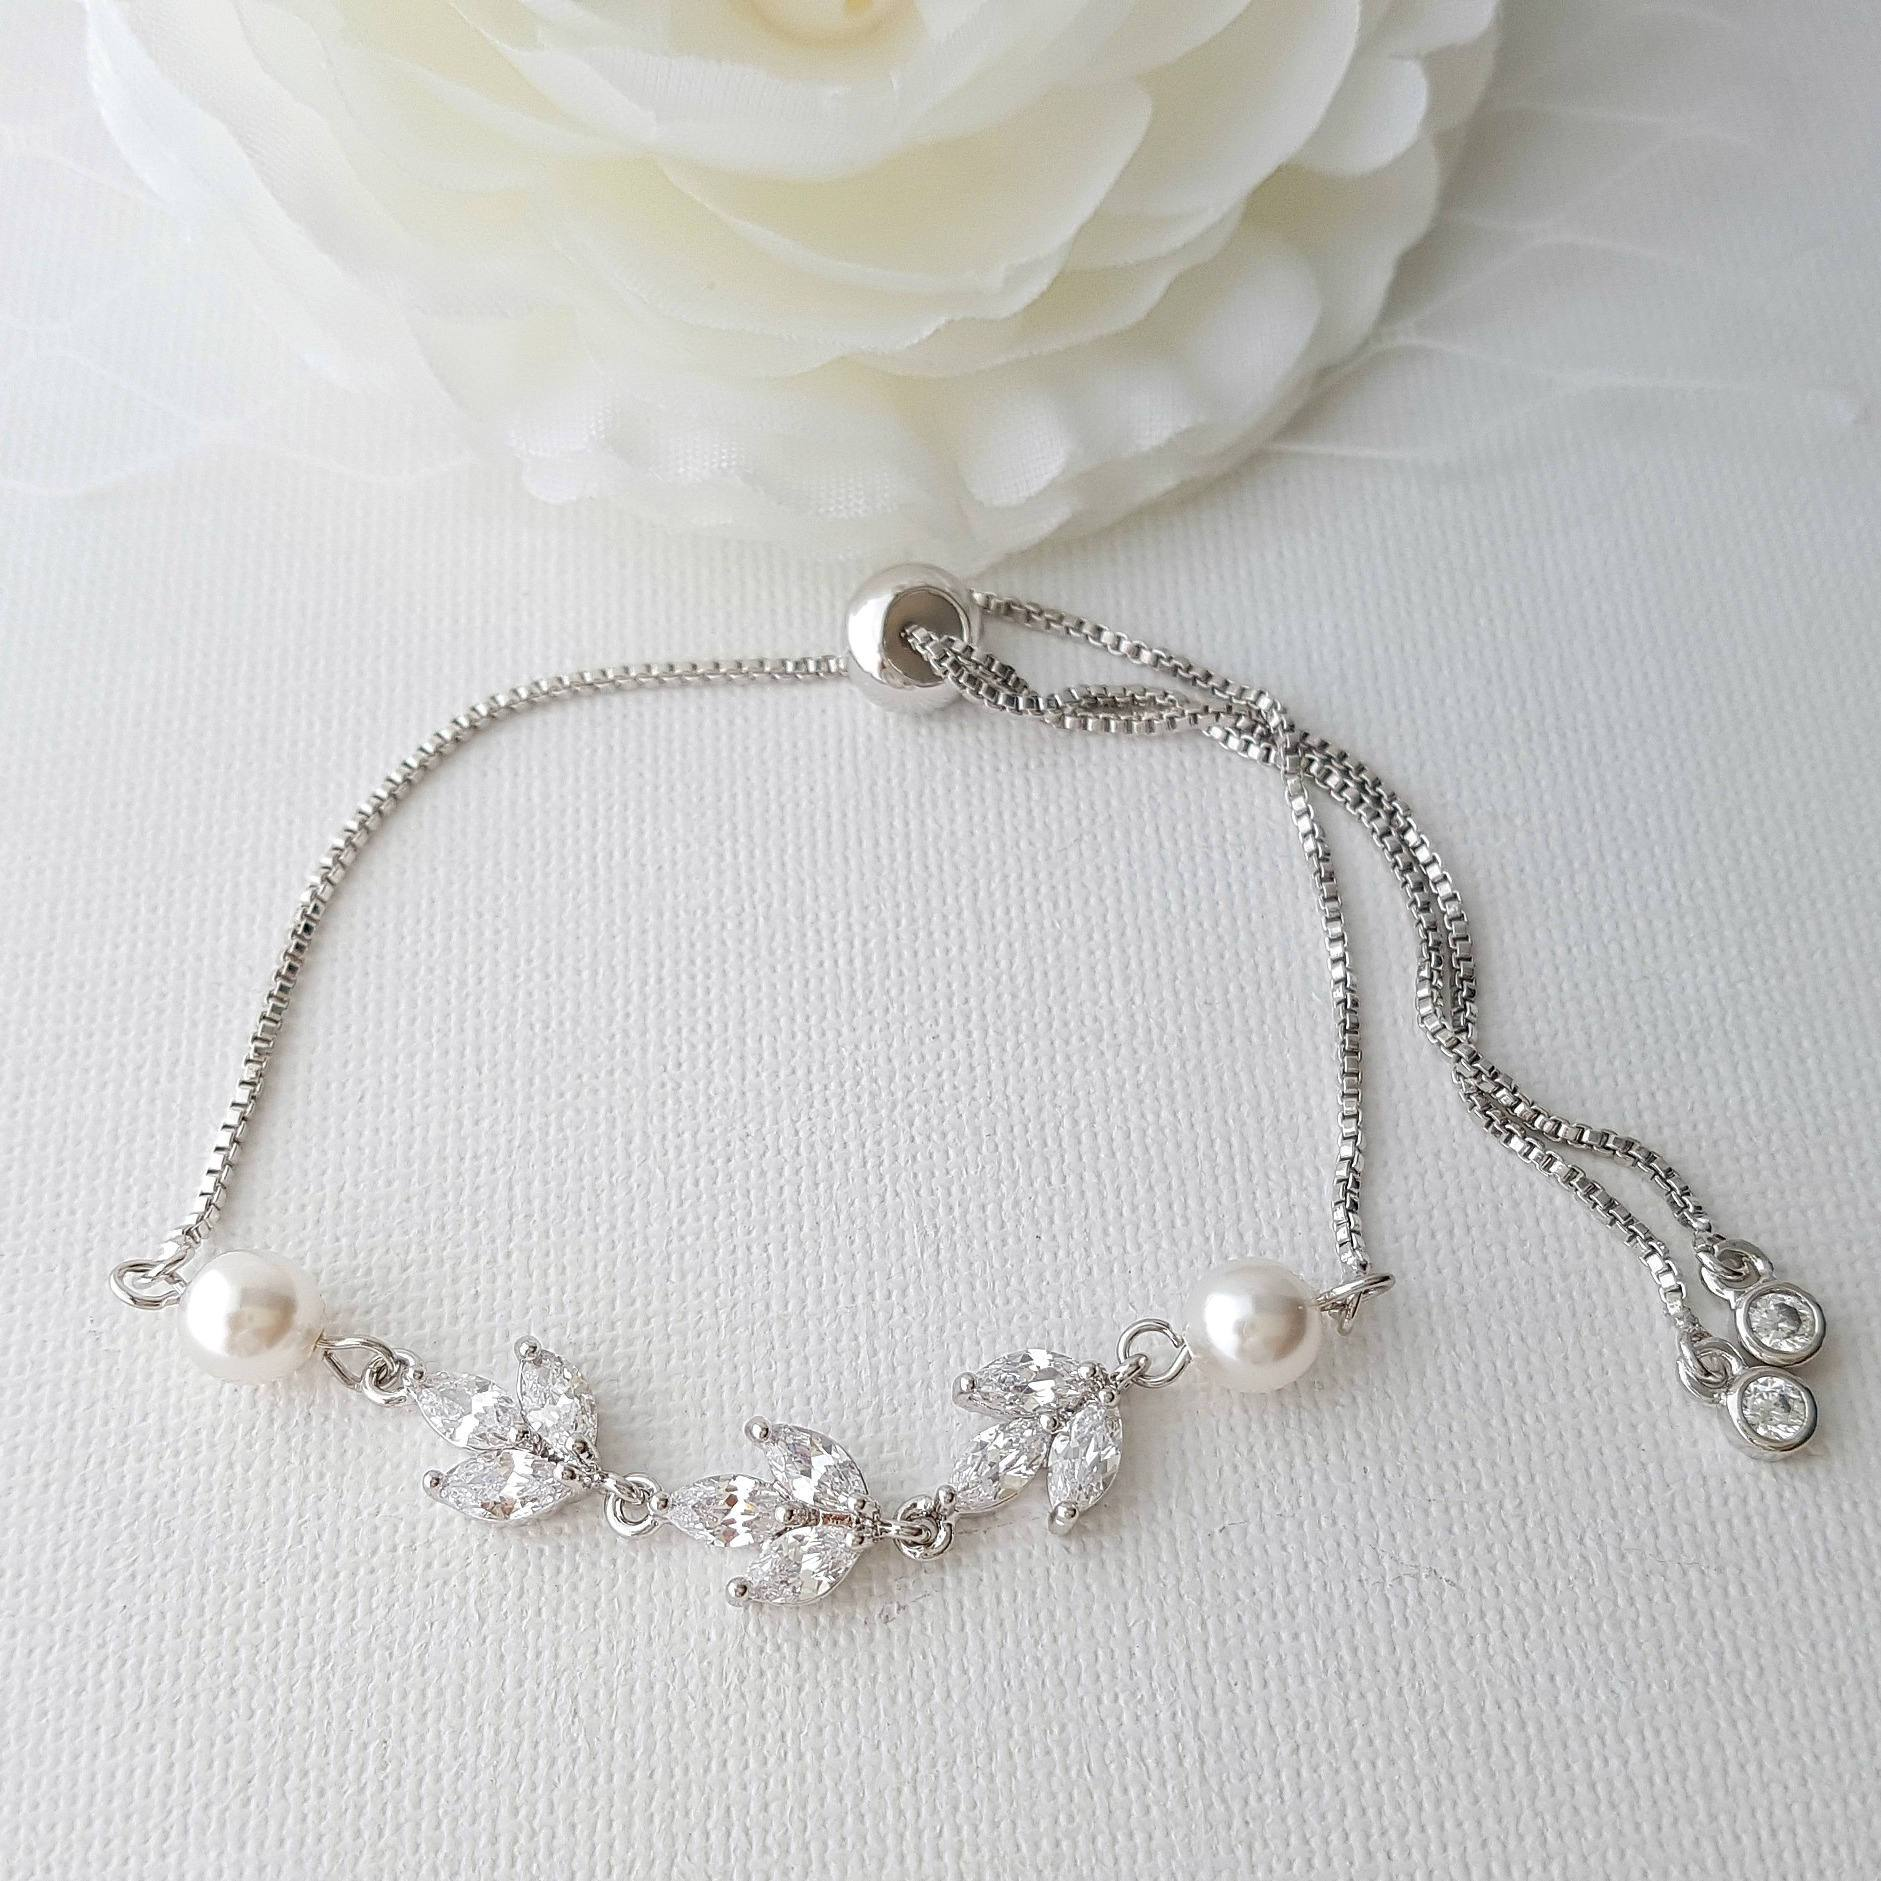 Adjustable Marquise Crystal Bridal Bracelet for Weddings, Formal, Prom-Leila